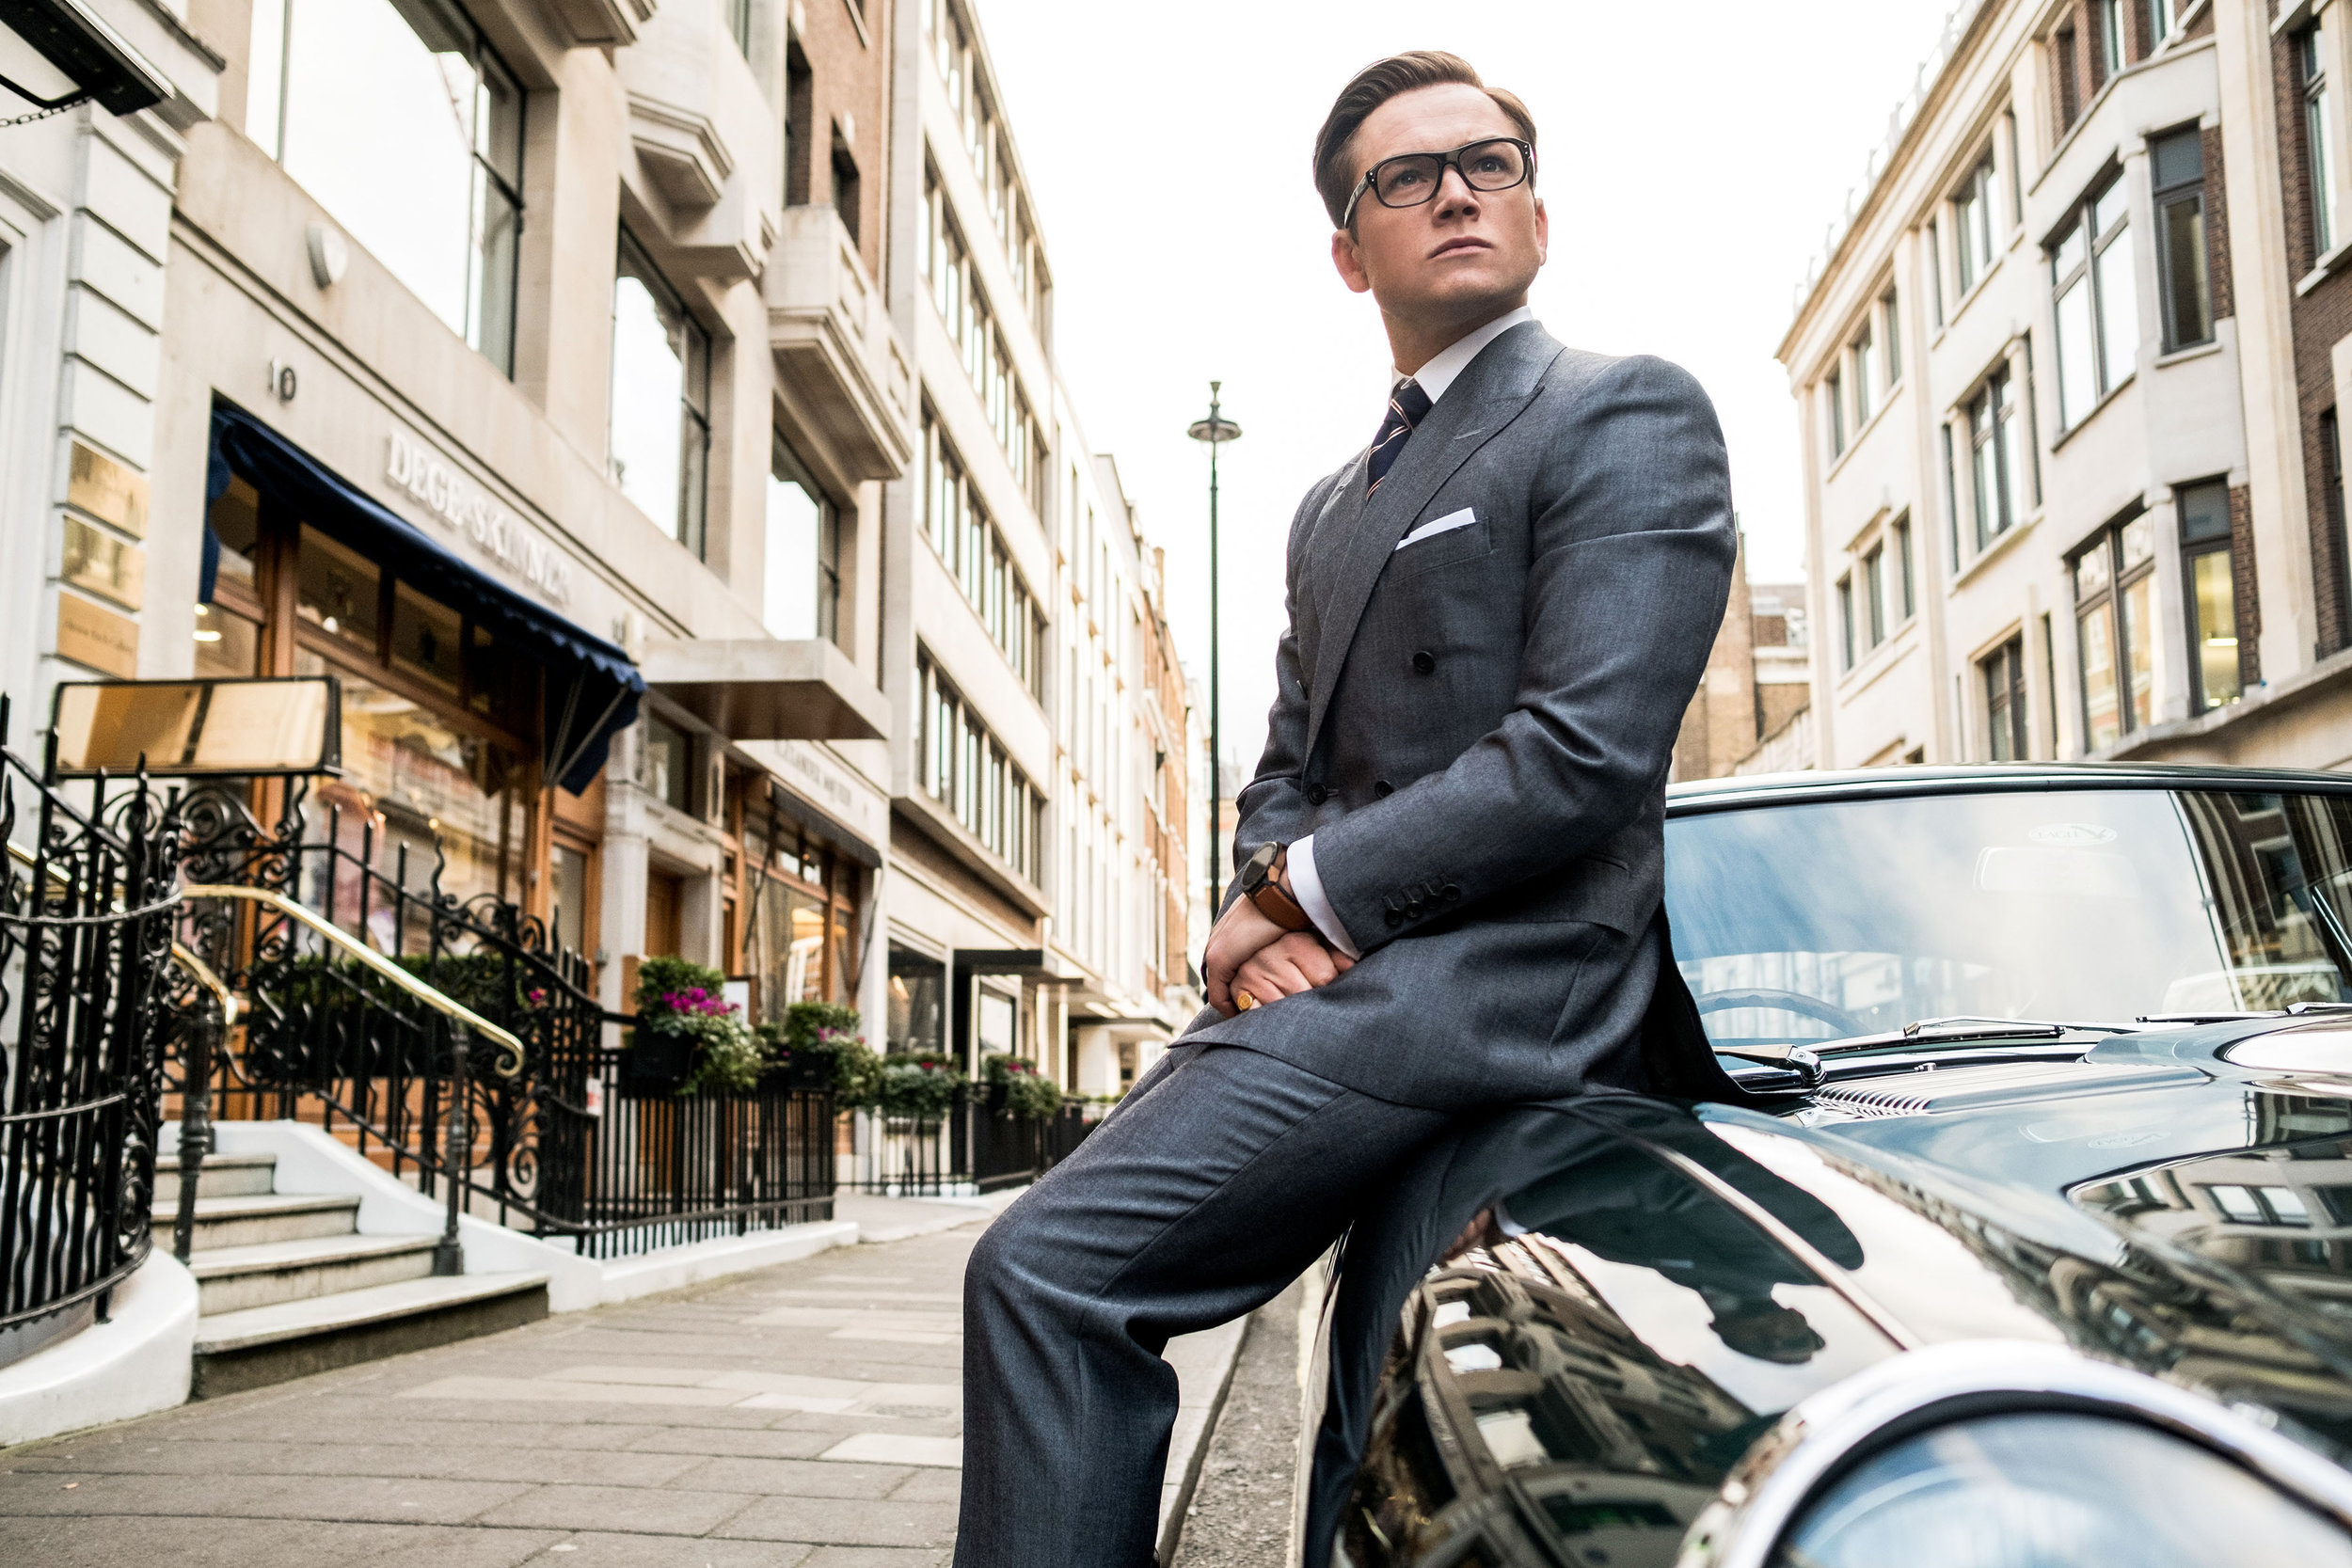 Taron Egerton, the very model of a modern British nongovernmental superspy.